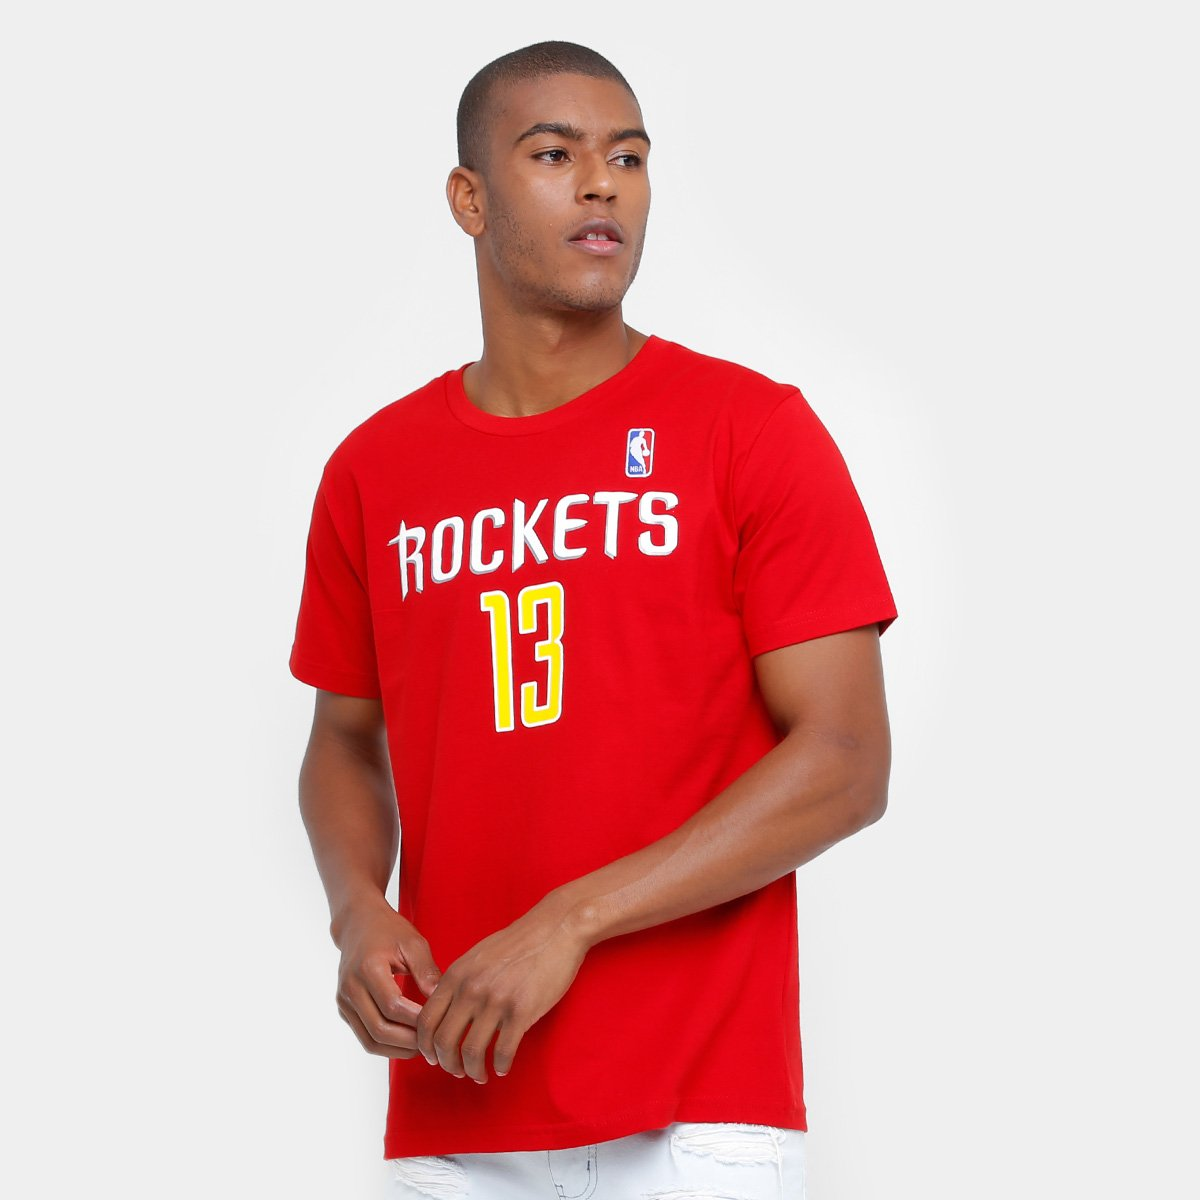 7cd6b9cf2 Camiseta NBA Houston Rockets Harden 13 Masculina - Compre Agora ...